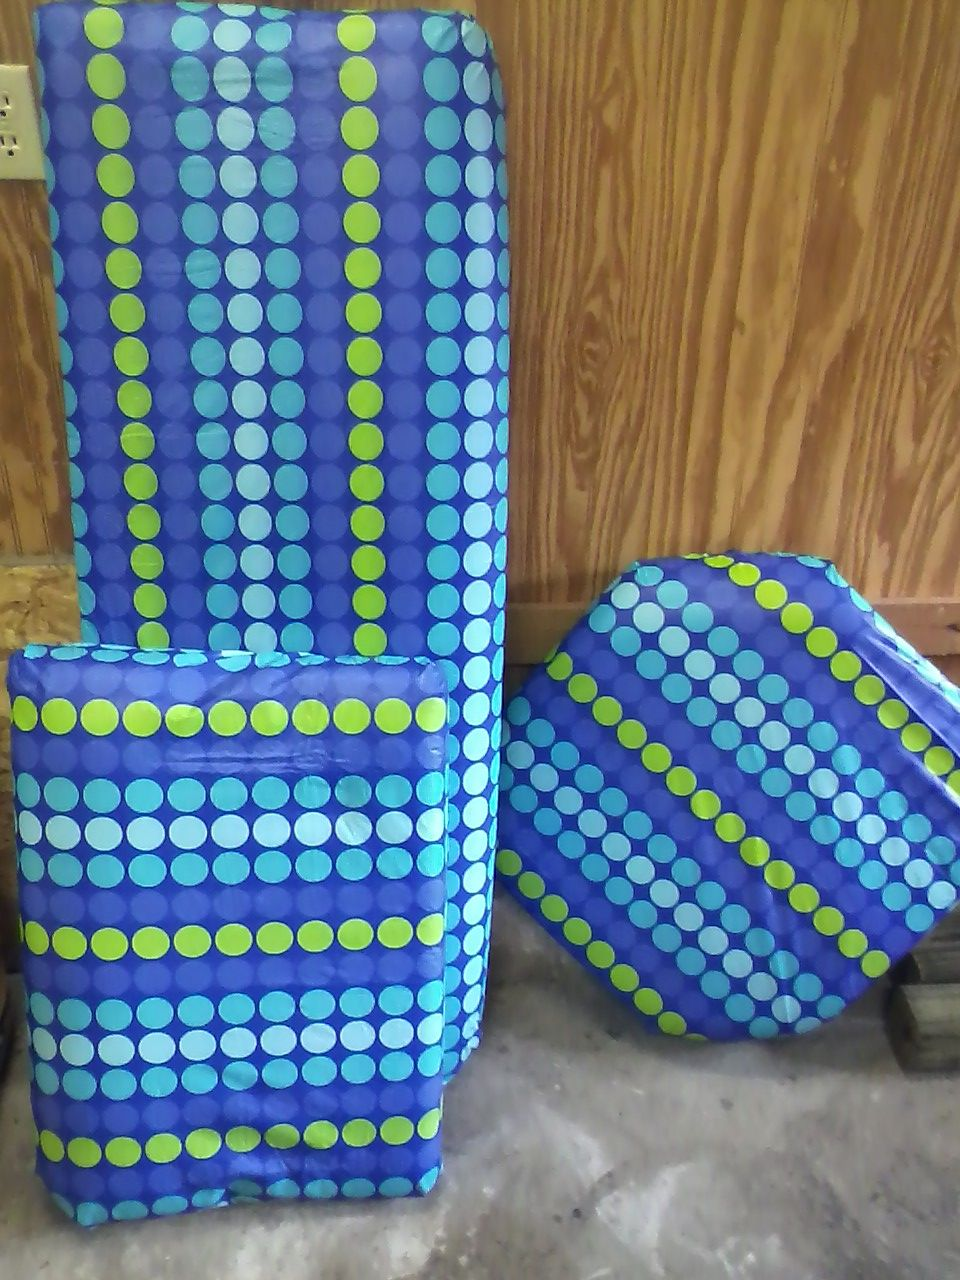 Diy Boat Cushions For Cheap I Used Vinyl Tablecloths From Walmart Car Stereo Wiring Harnesses Page 5 397 Each You